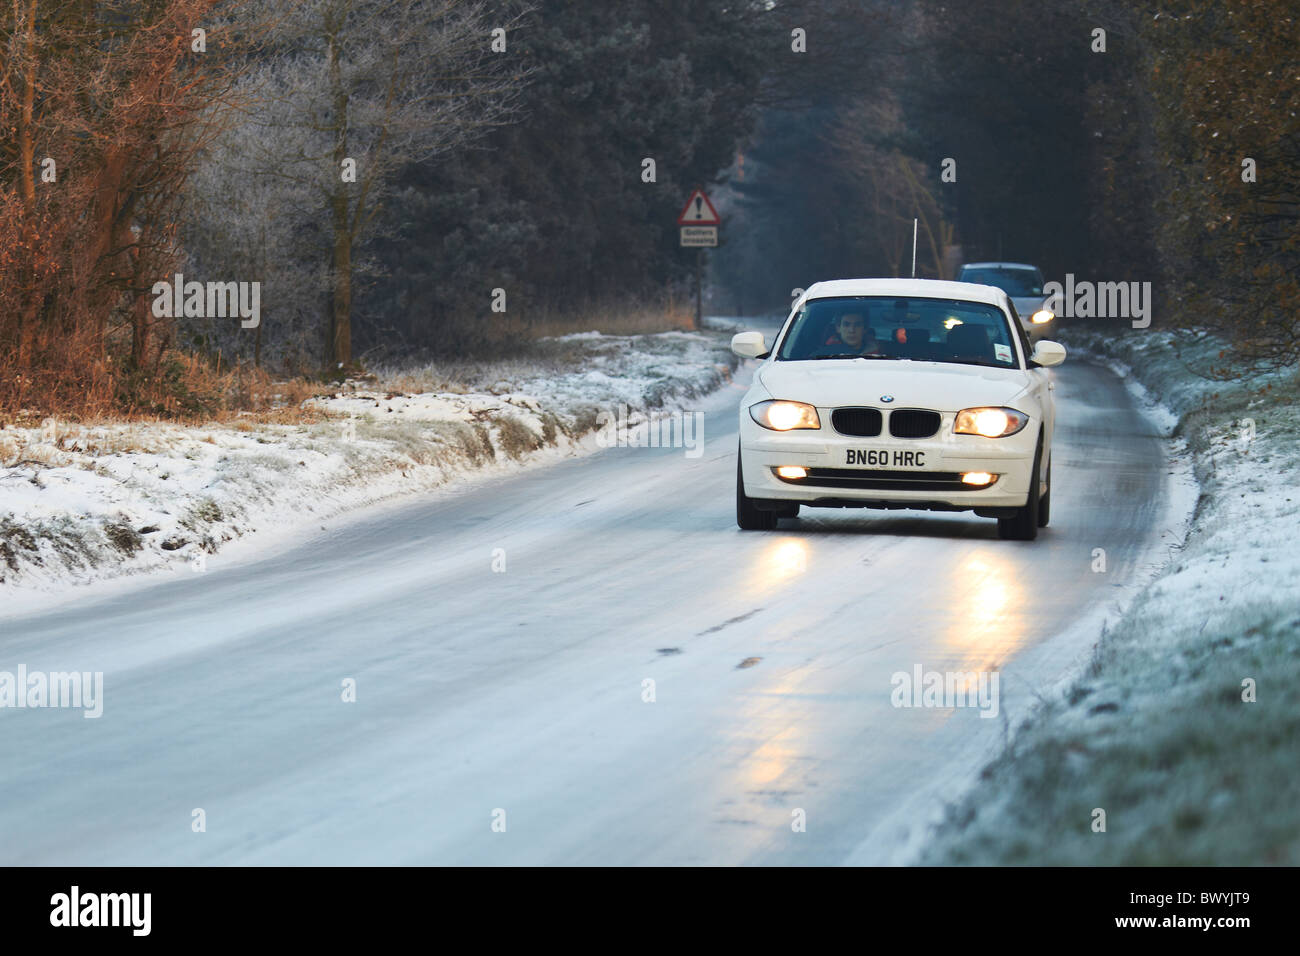 Black Ice on Country Roads - Stock Image